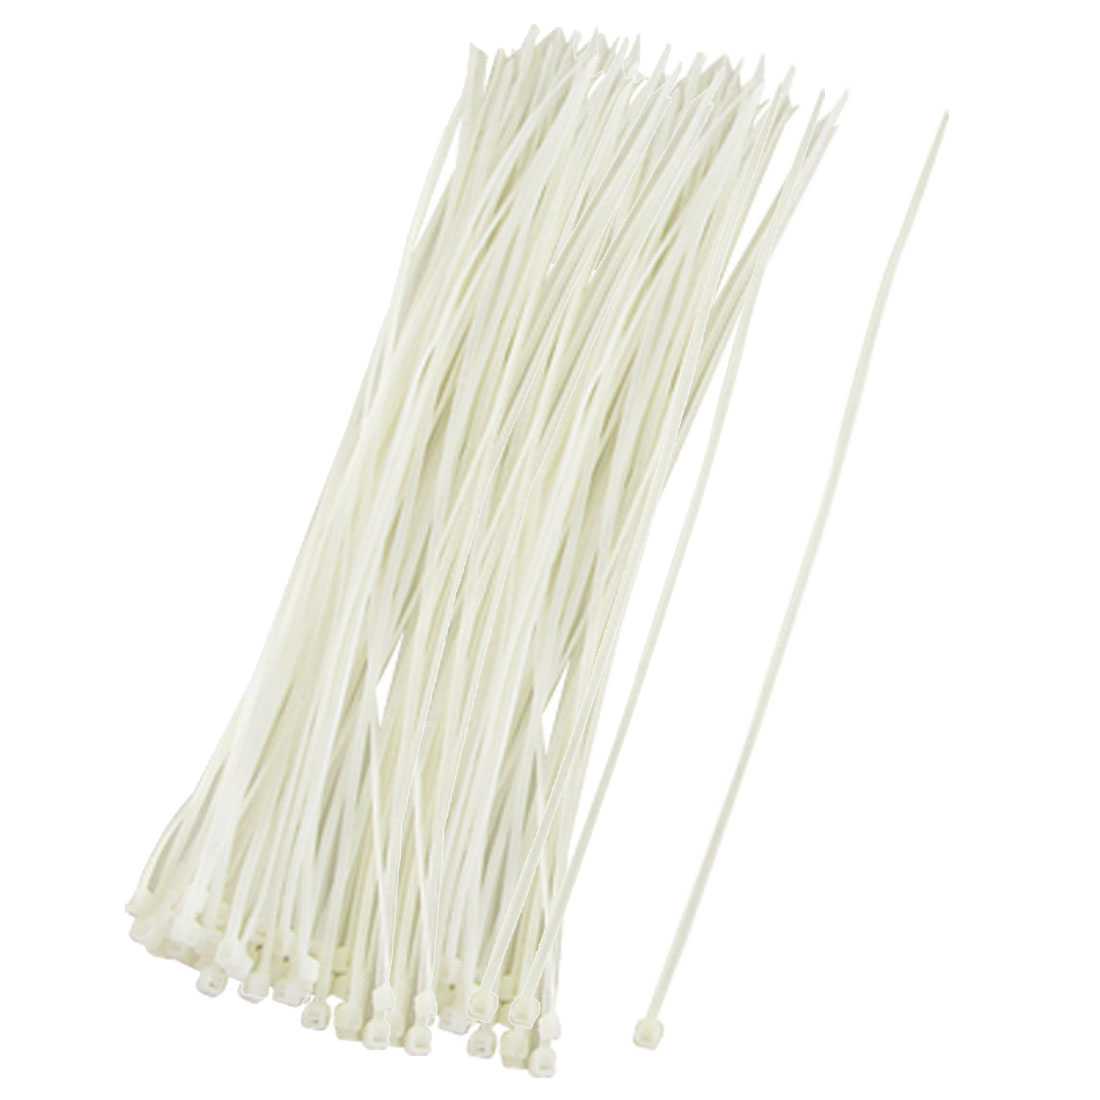 150 Pcs Off White Plastic 290 x 4mm Wire Zip Cable Ties